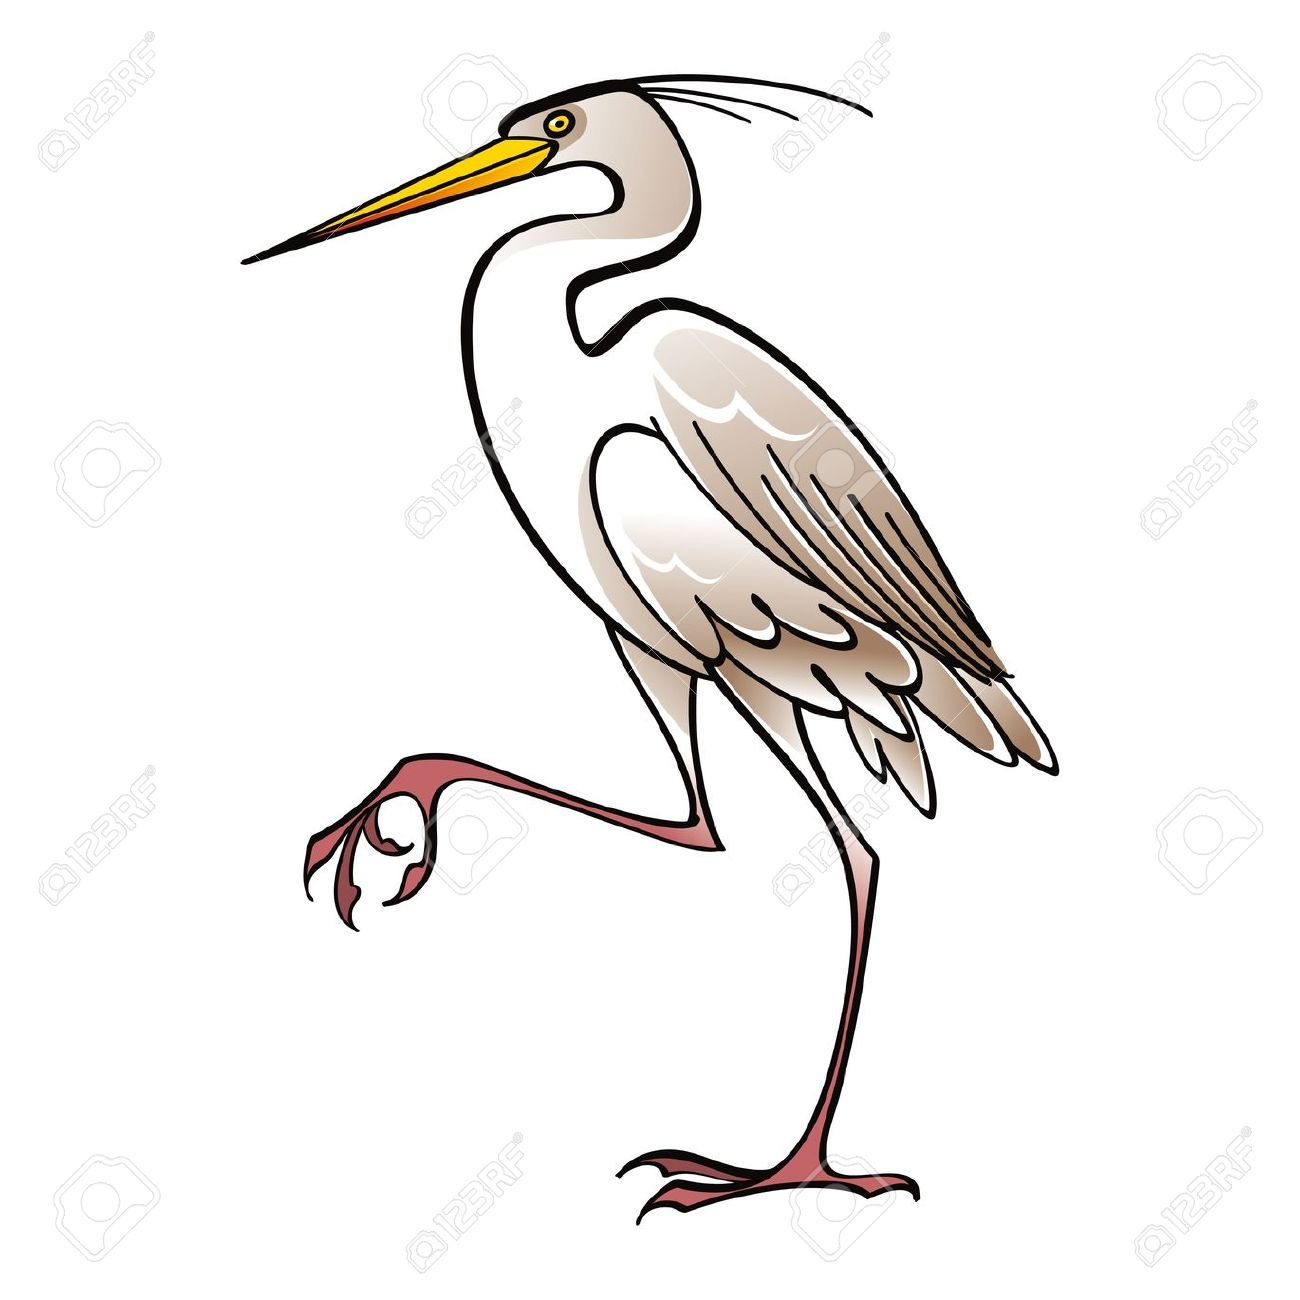 white crane bird clip art bird pinterest clip art drawing rh pinterest com hero clipart heron clipart free